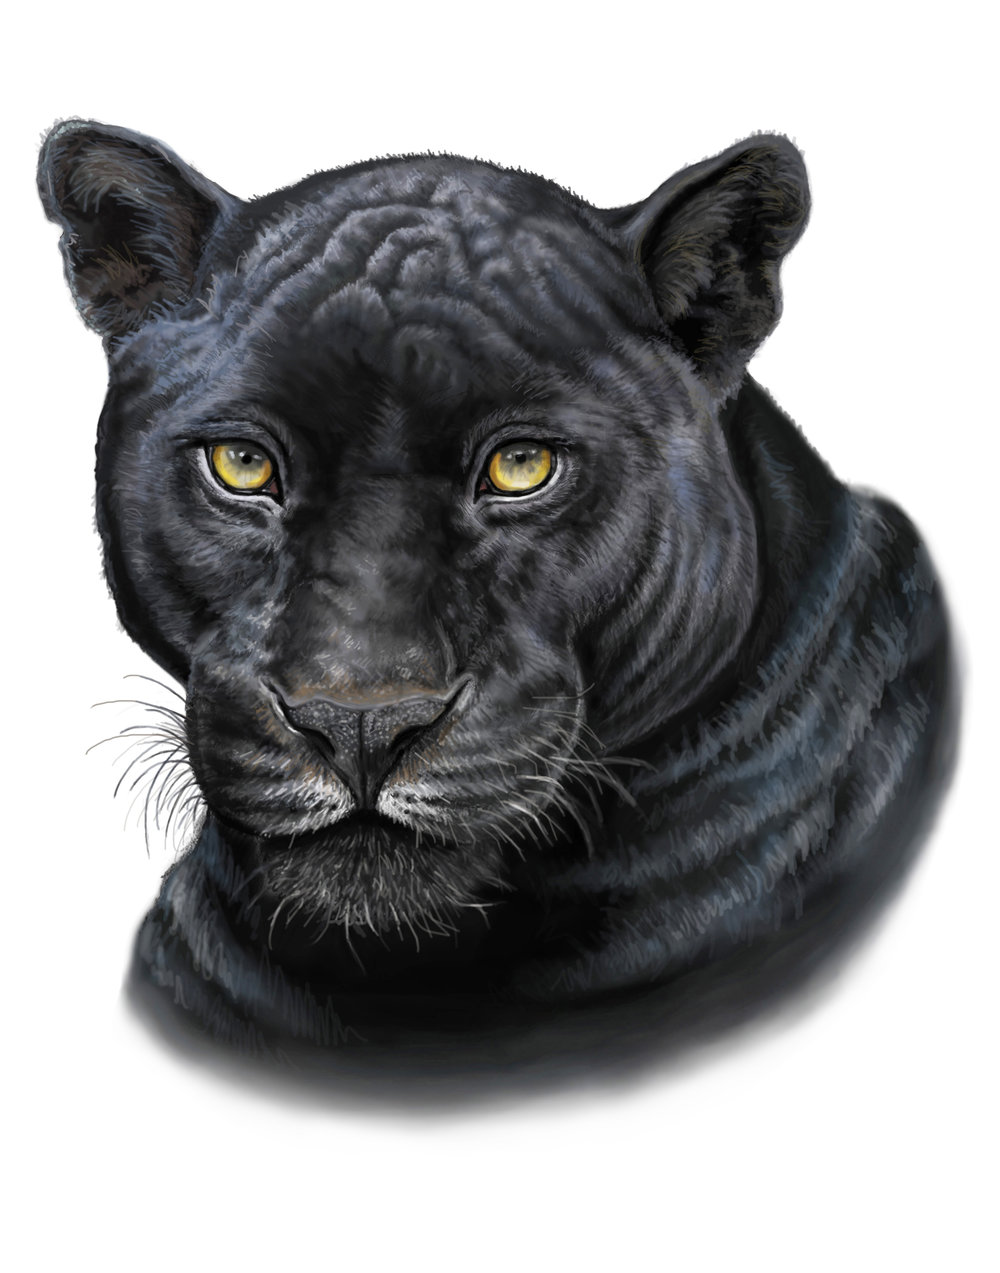 panther fixed 11x14.jpg